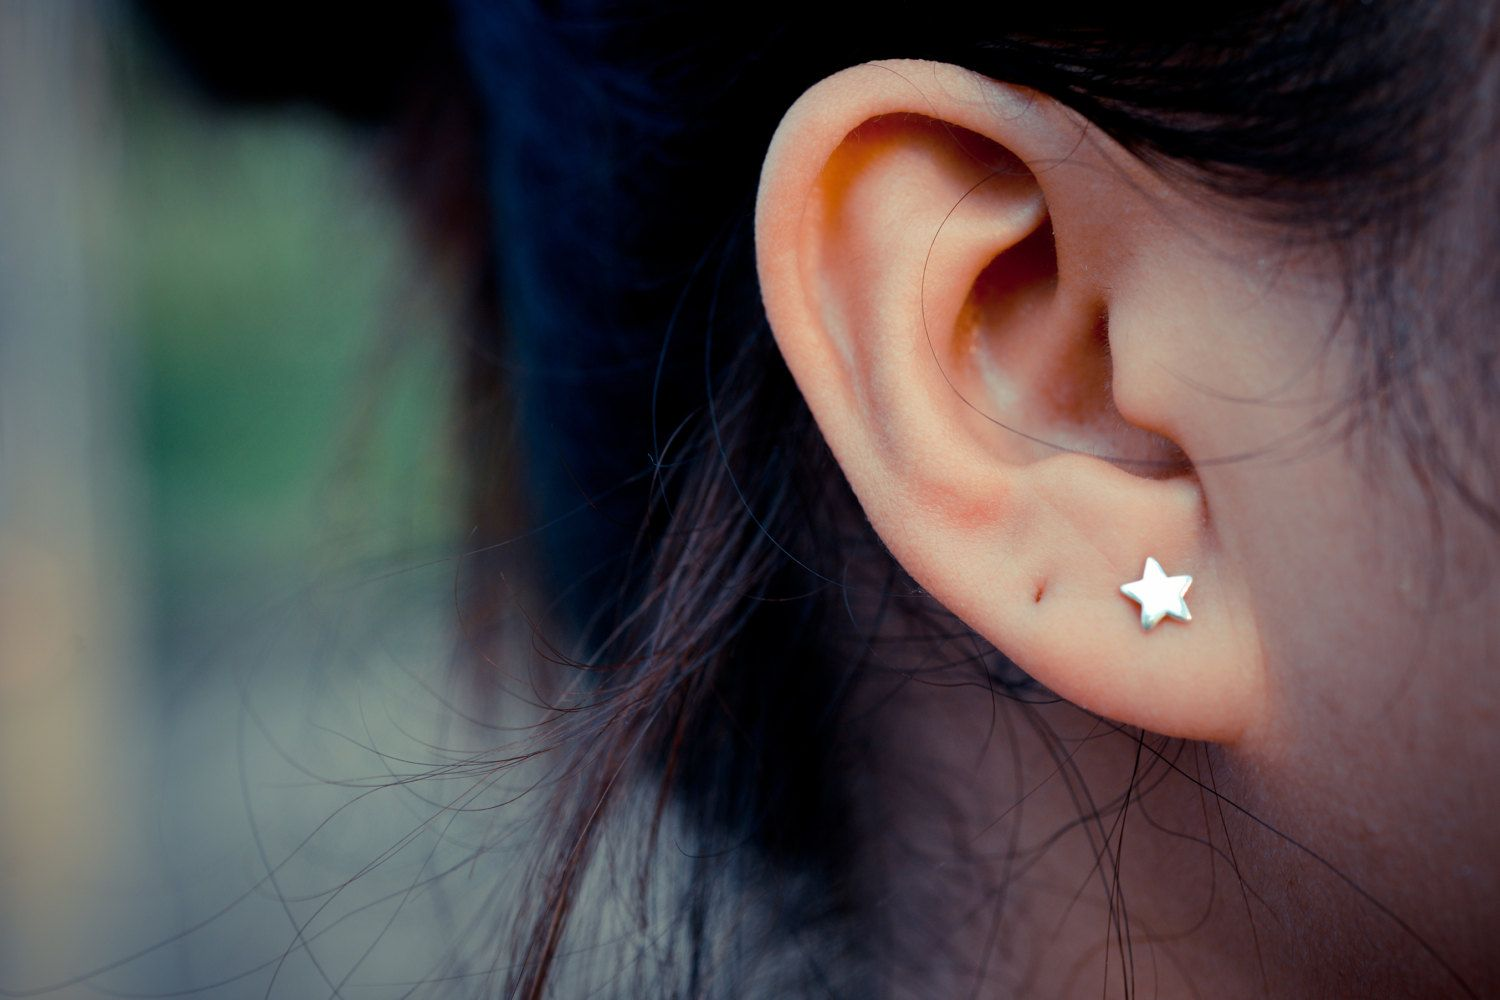 Handmade Sterling Silver Star Stud Earring , Modern Post Jewelry Gift for Woman